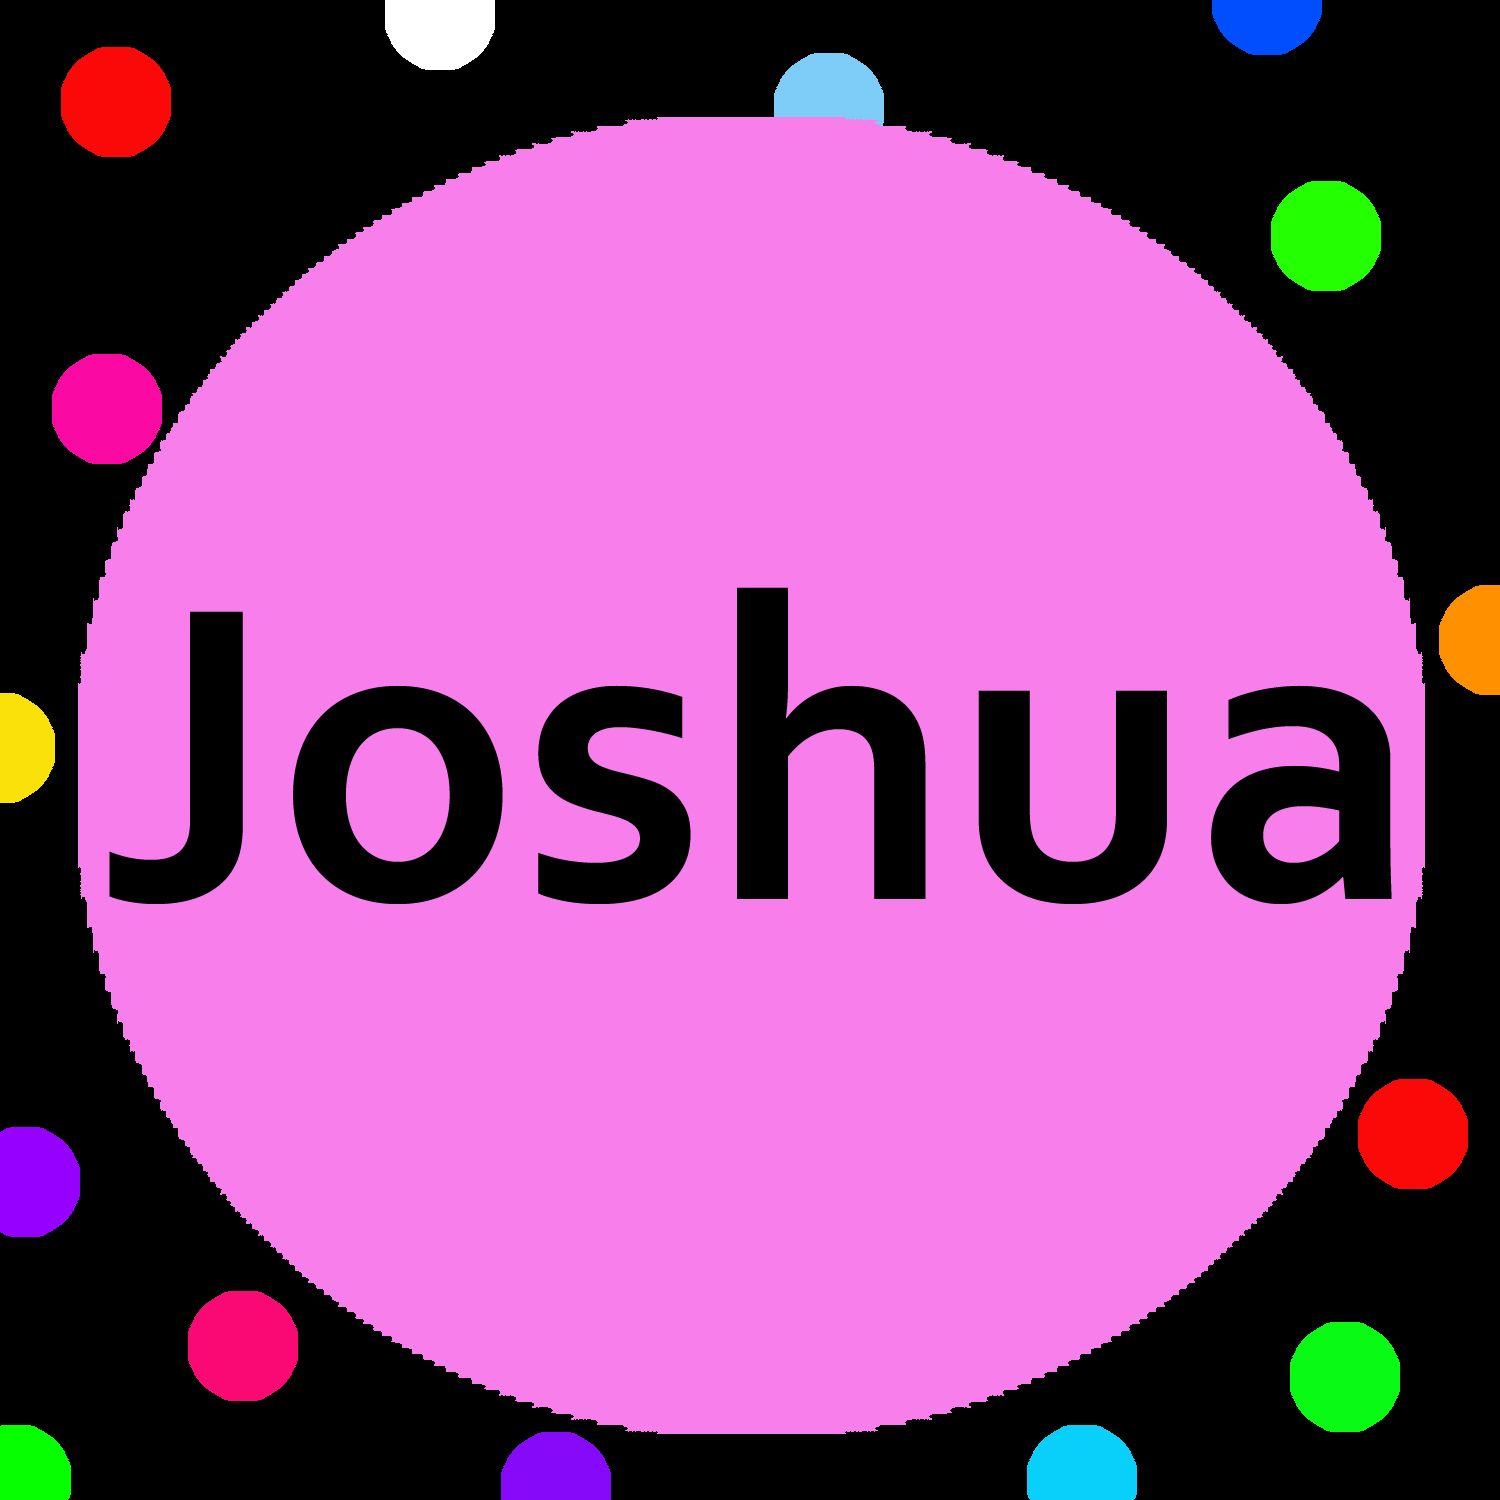 Joshua Fought The Battle Of Jericho Song And Lyrics Perfect For A Sunday School Lesson